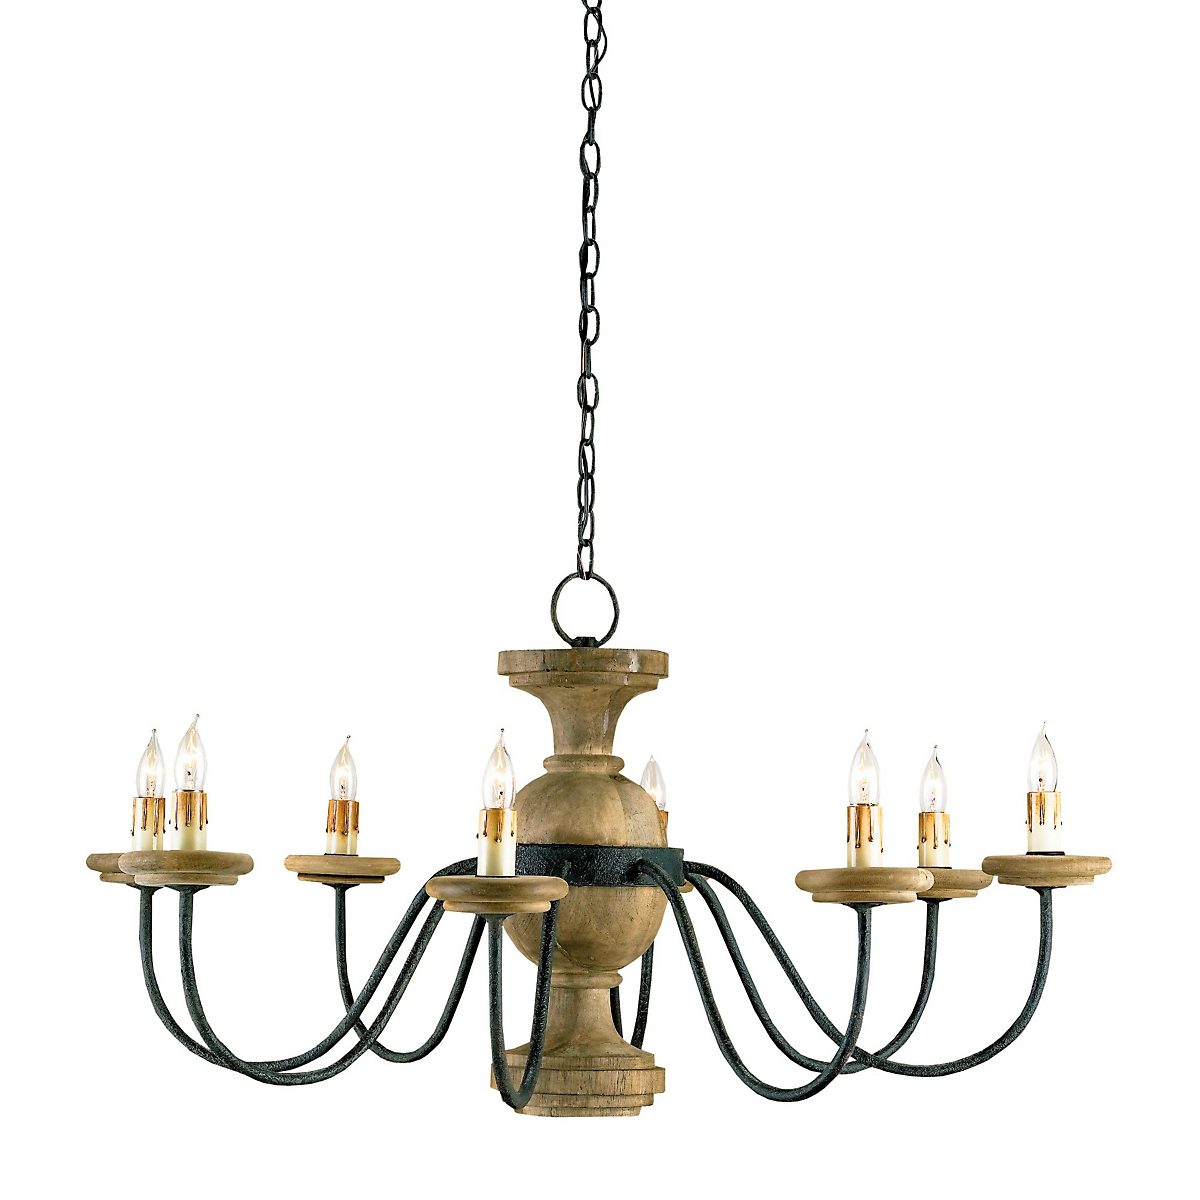 Currey & Company Treesmill Chandelier